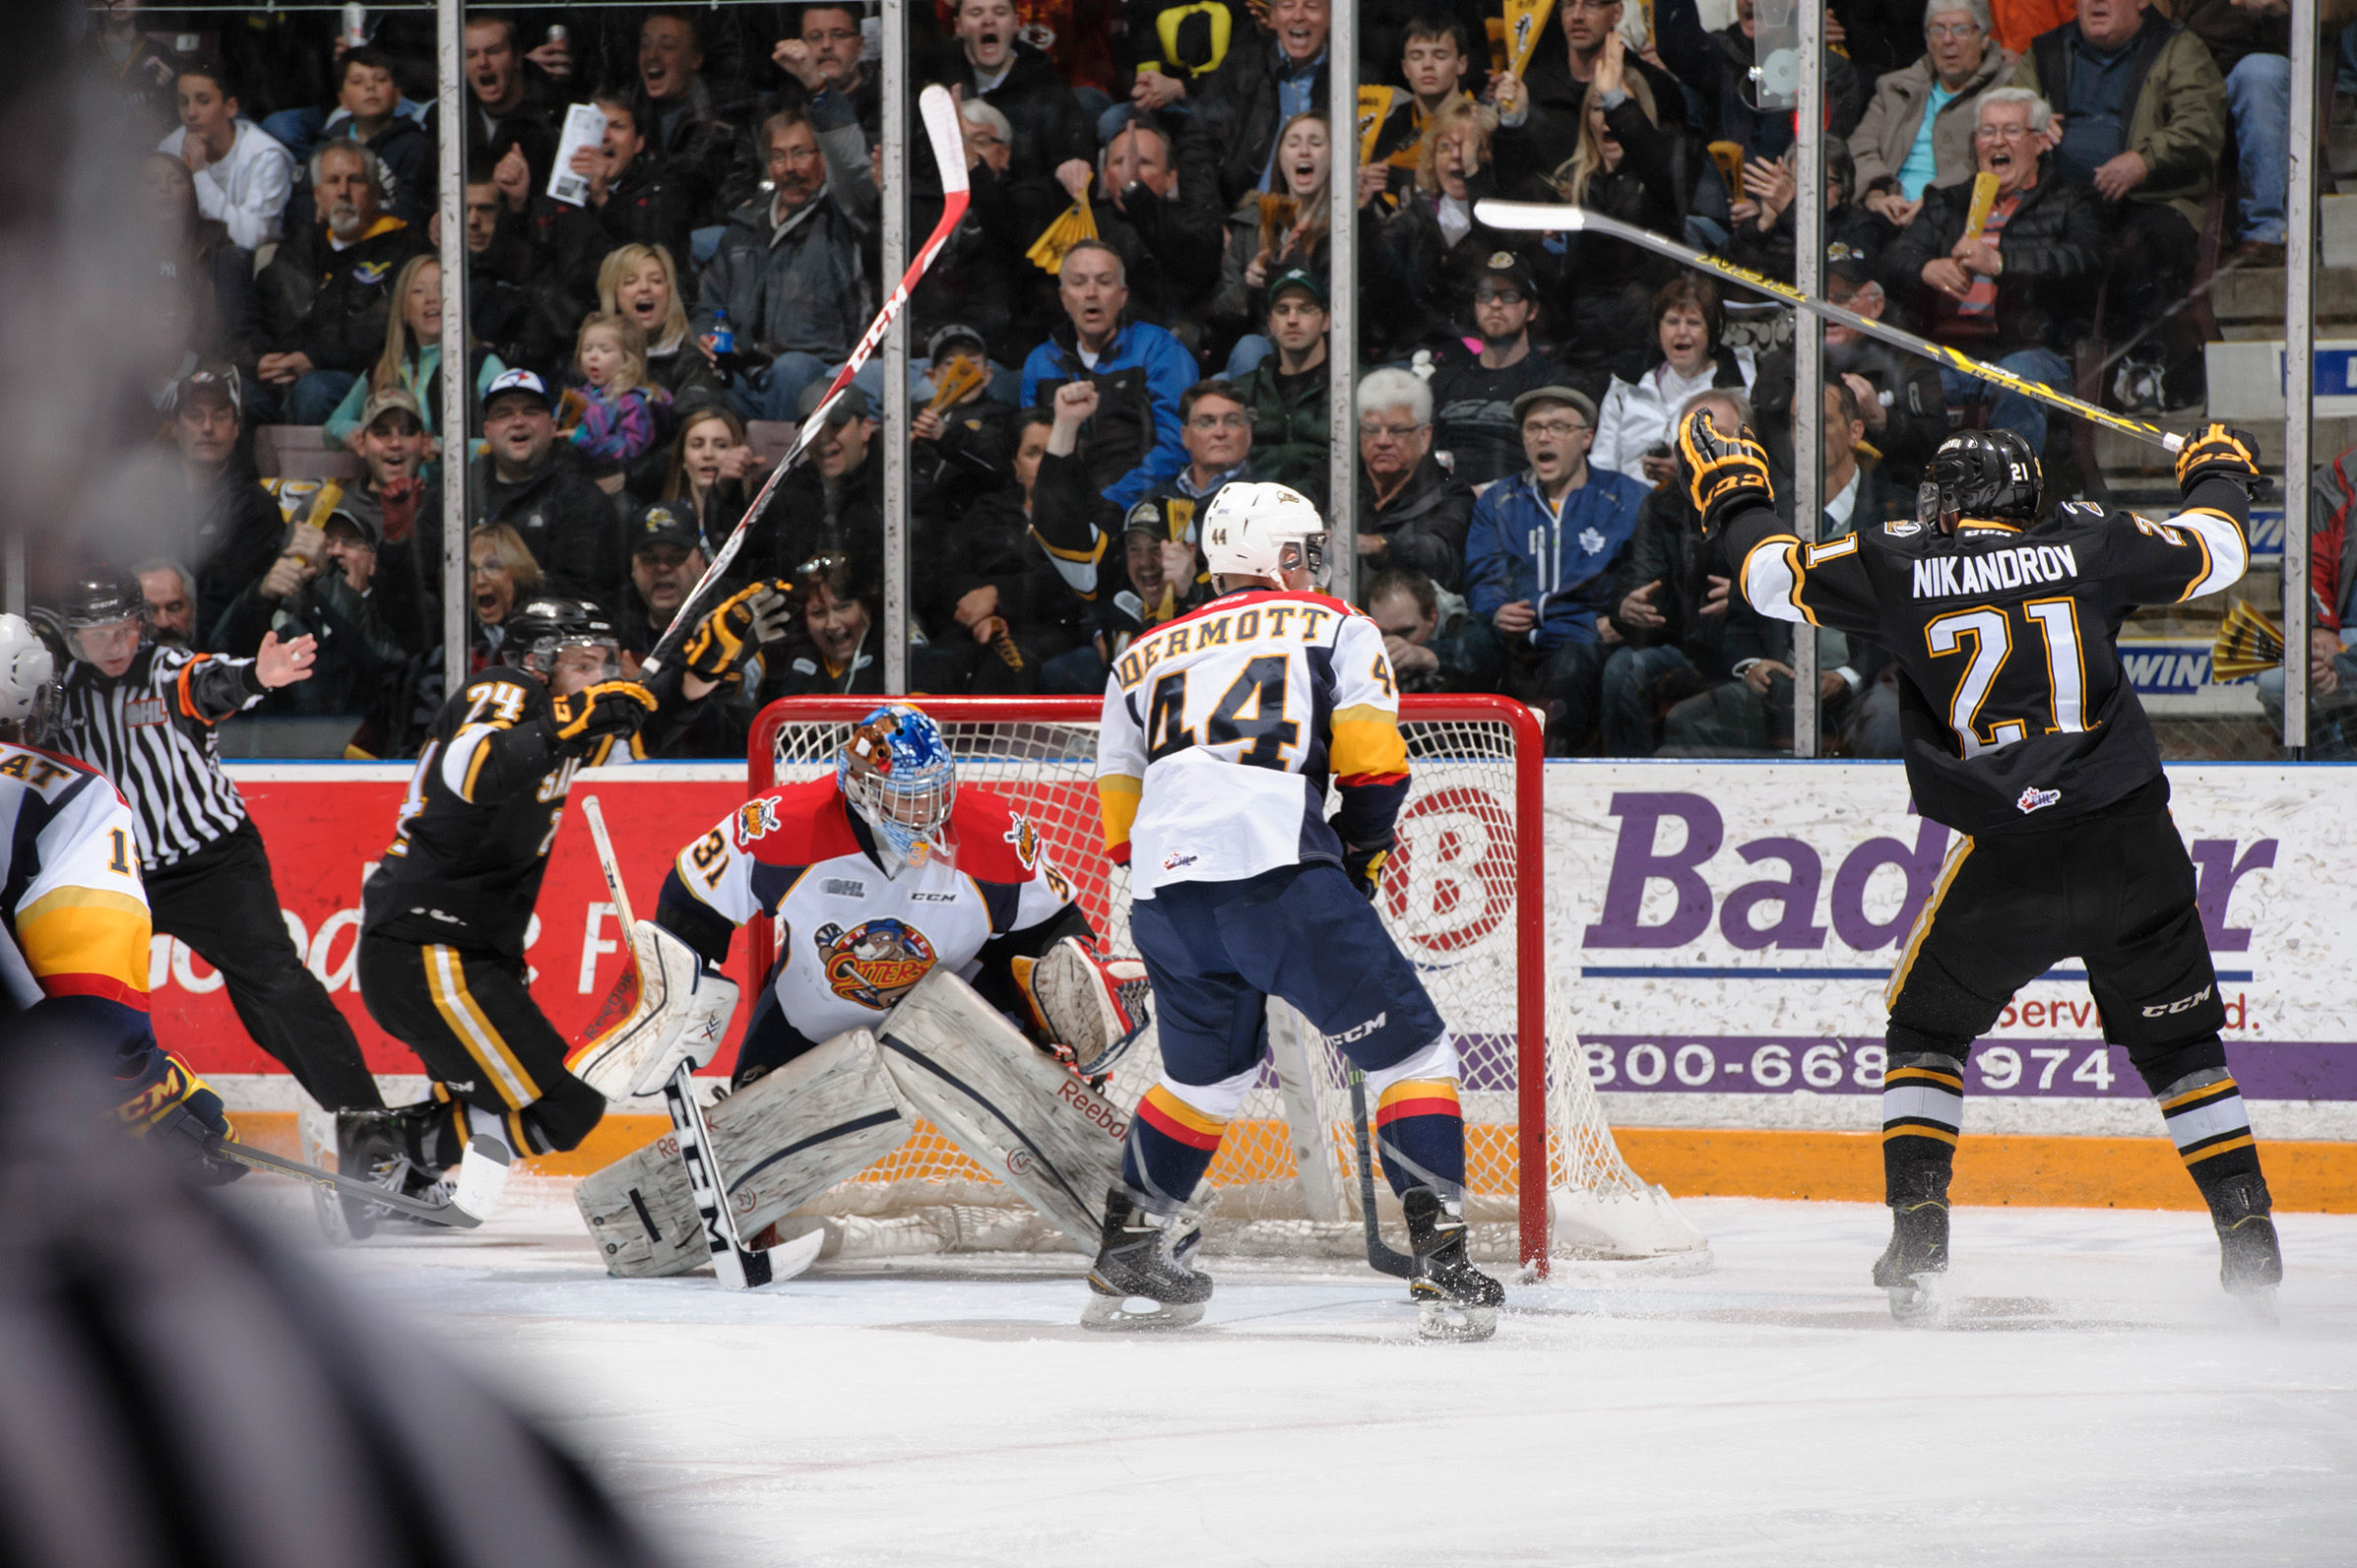 The Sting celebrate a goal in game 4 vs Erie Mar. 31, 2015 (Photo courtesy of Metcalfe Photography)